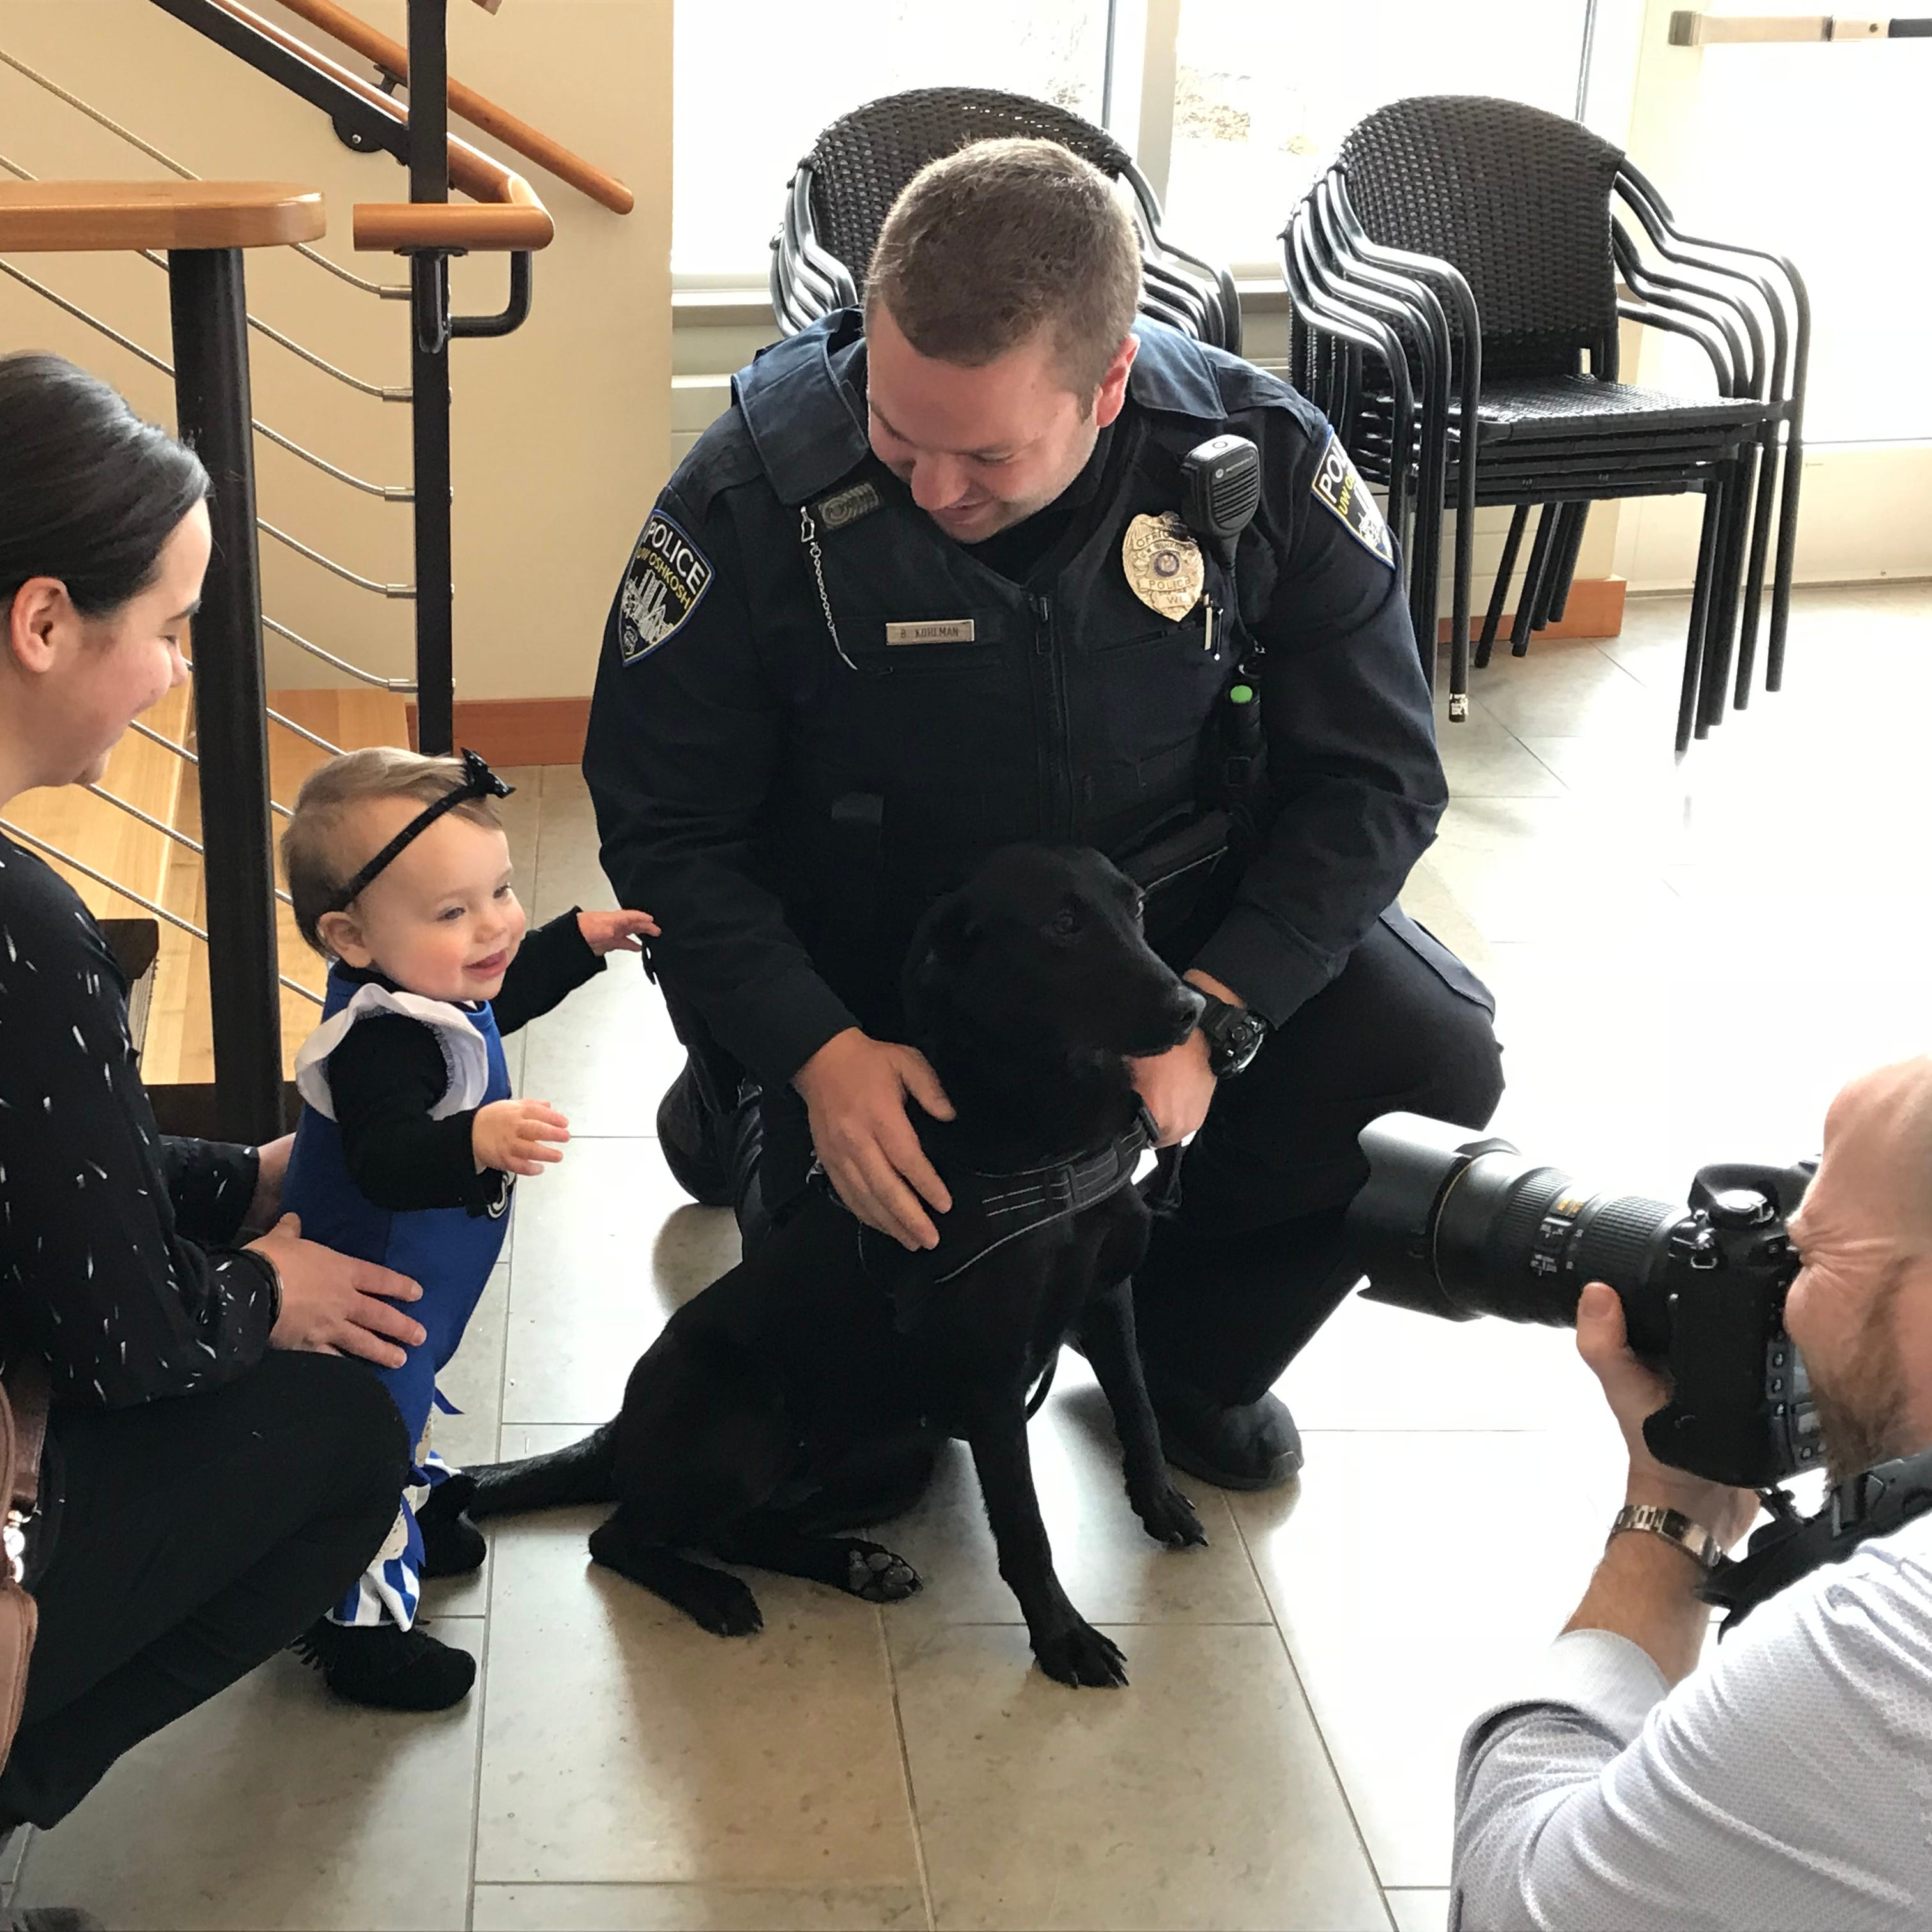 UW-Oshkosh Police get first dog: Skylar, a cuddly black lab with a nose for explosives